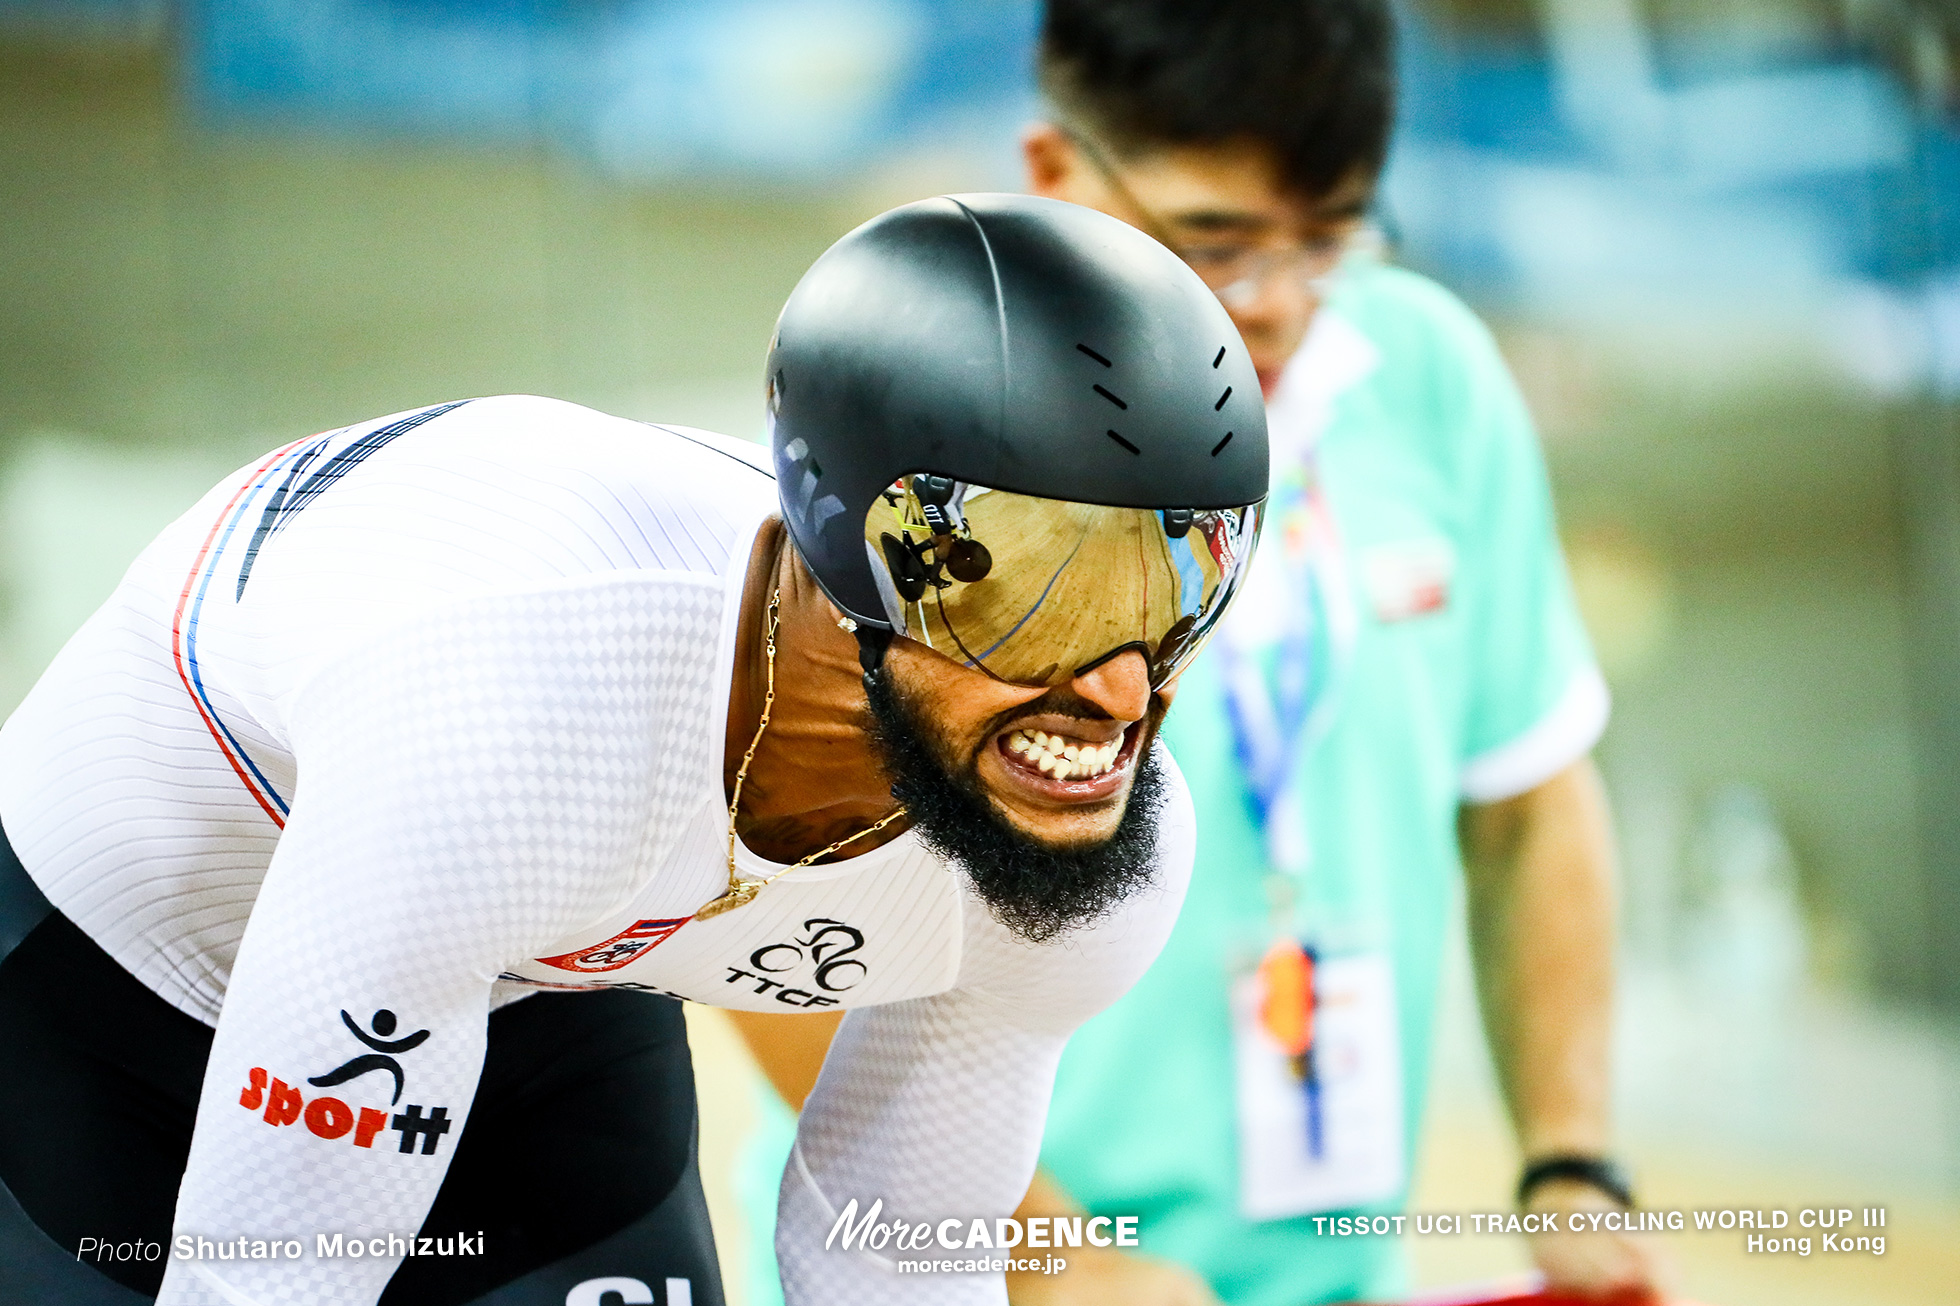 Qualifying / Men's Team Sprint / TISSOT UCI TRACK CYCLING WORLD CUP III, Hong Kong, Njisane PHILLIP ヌジサネ・フィリップ